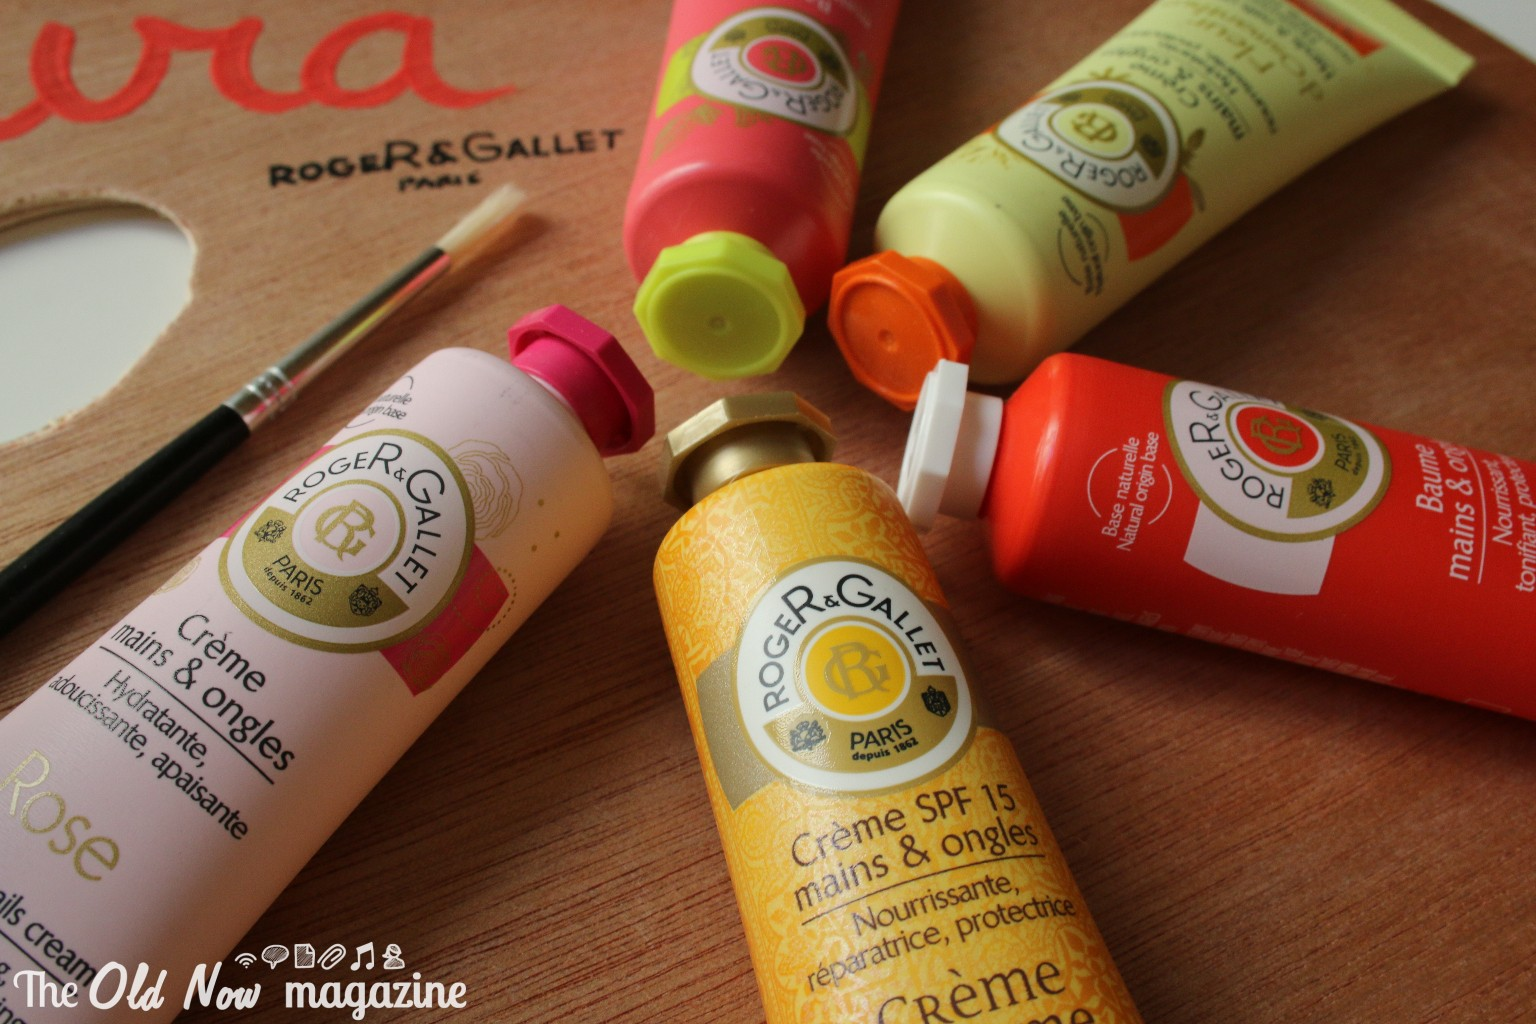 ROGER&GALLET THEOLDNOW (2)